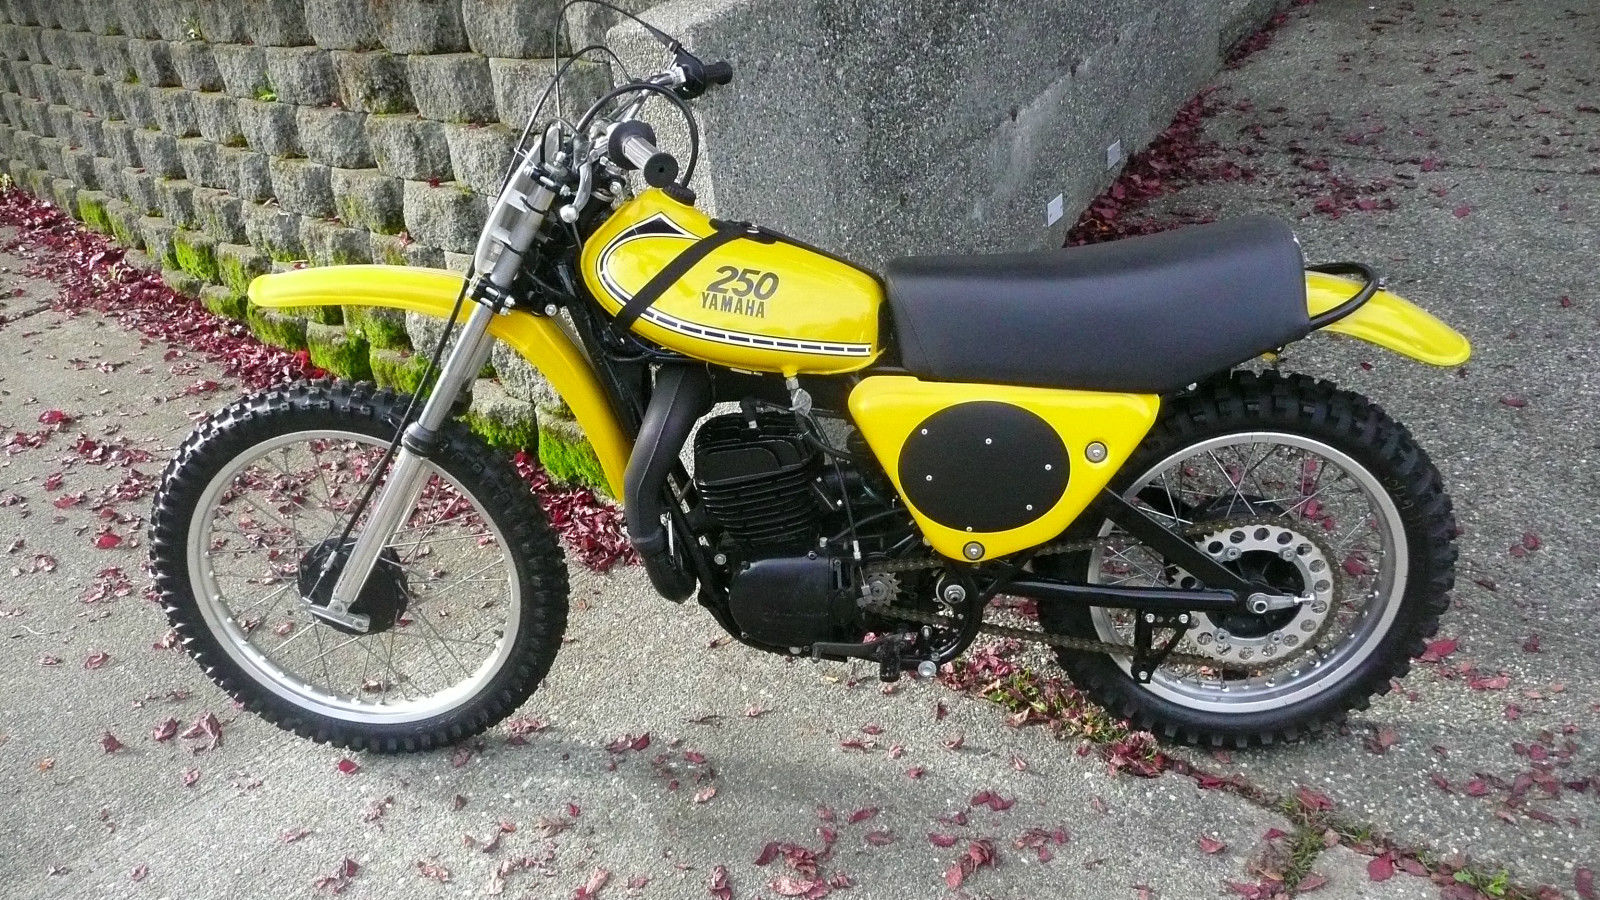 1975 yamaha yz250b mono shock strap tank 360 a 1974 125. Black Bedroom Furniture Sets. Home Design Ideas